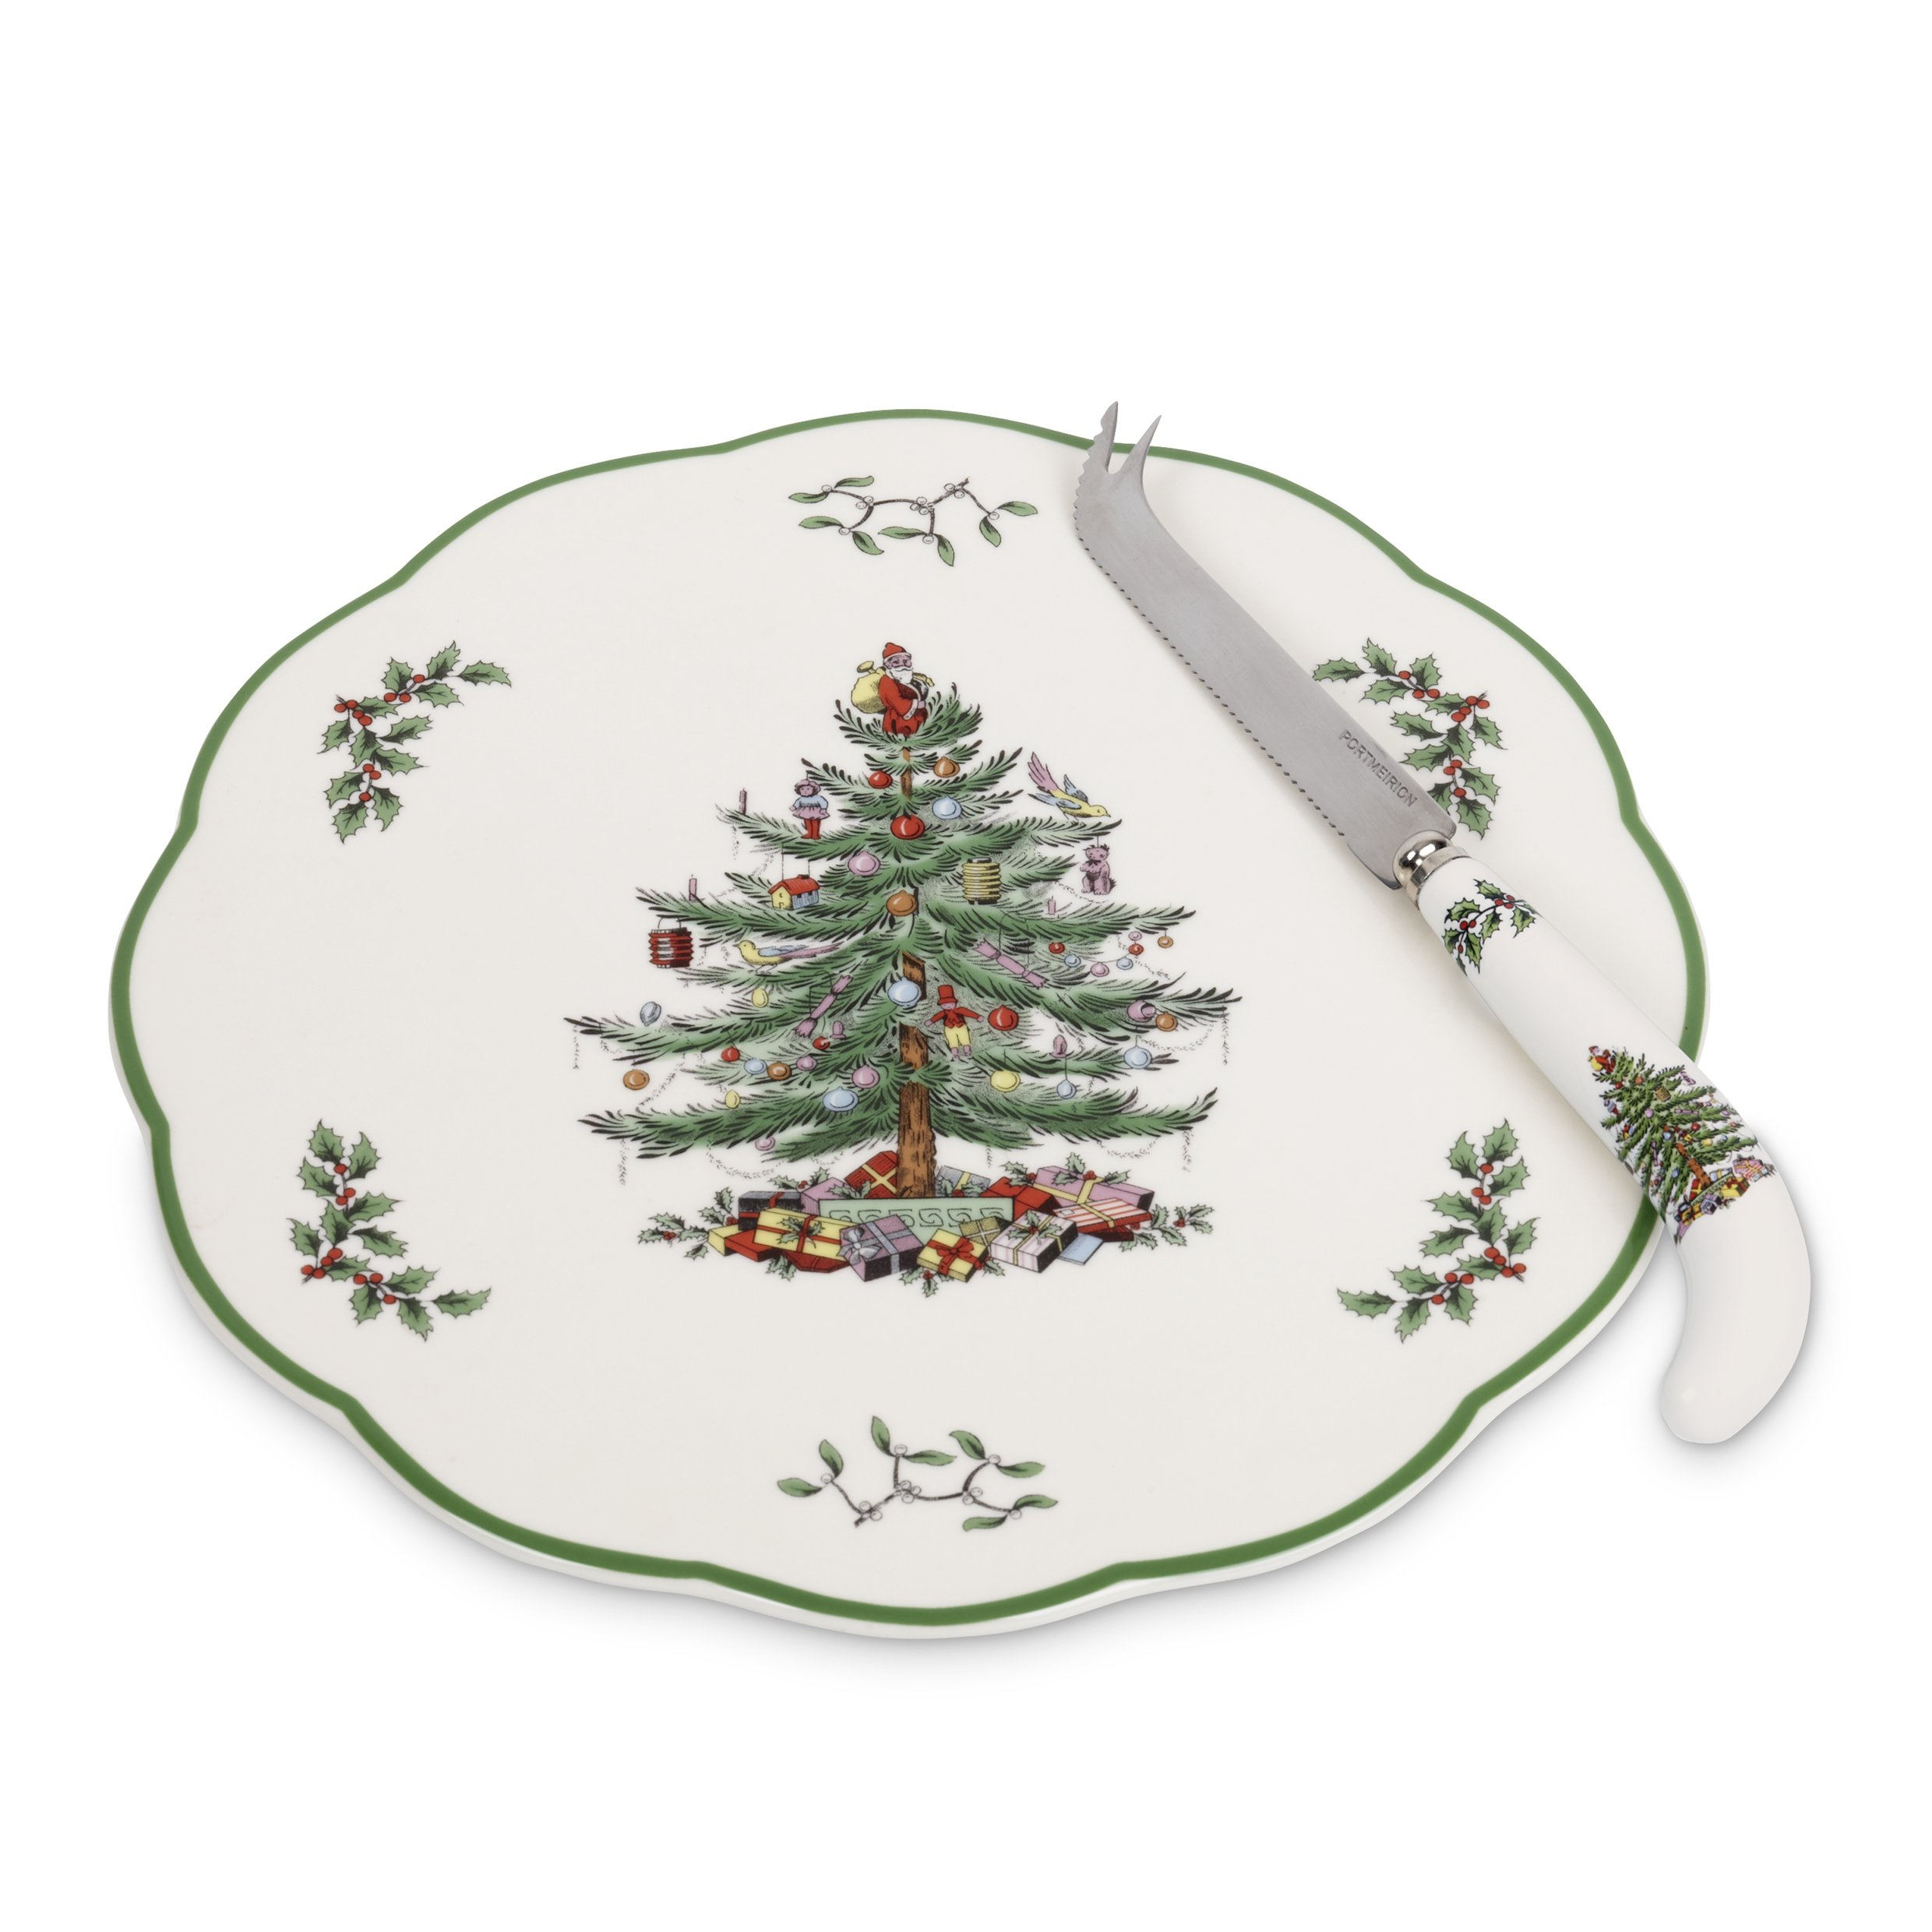 Spode Christmas Tree Appetizer Plate with Cheese Knife